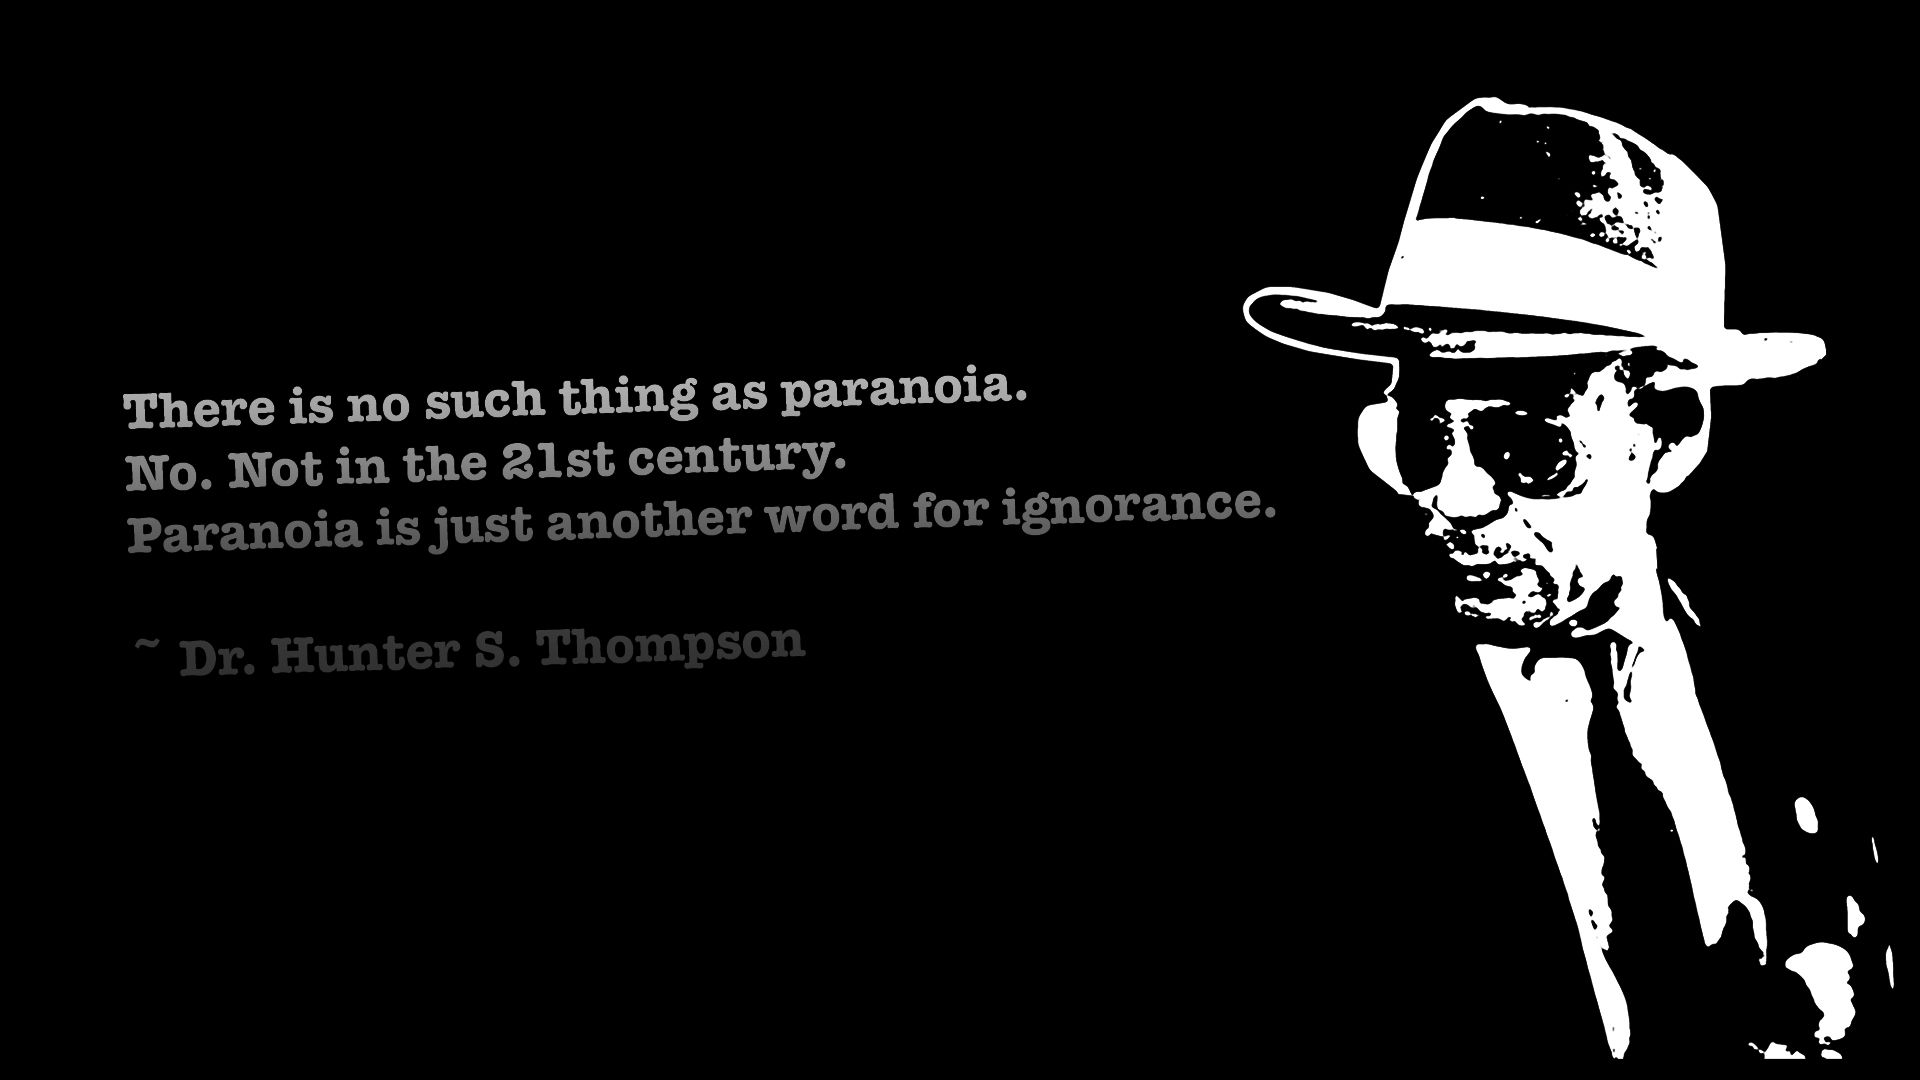 Hunter S. Thompson The Final Words naked (79 pictures)